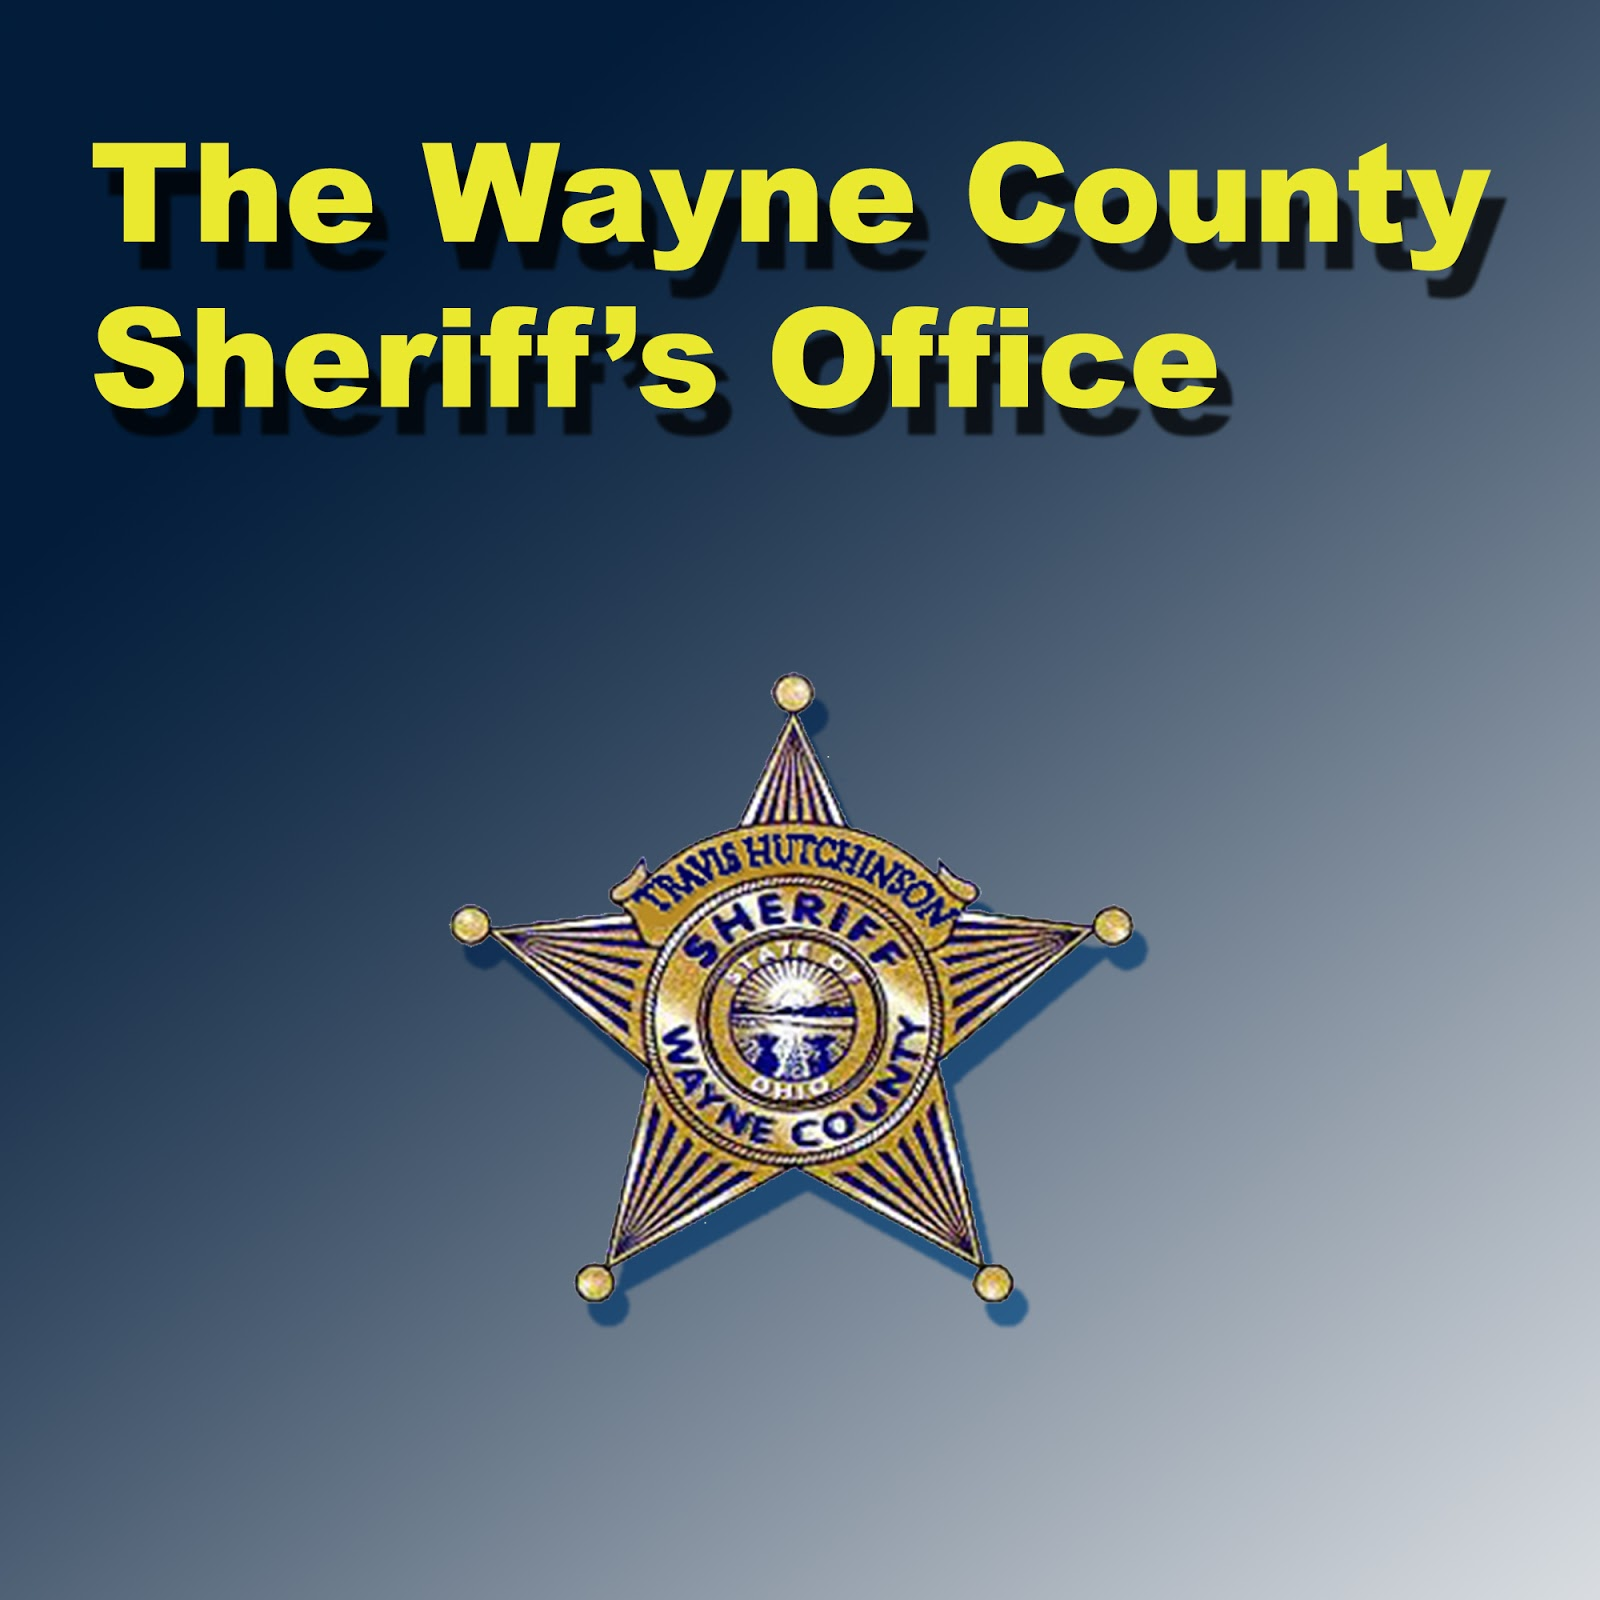 The Wayne County Sheriff's Office logo